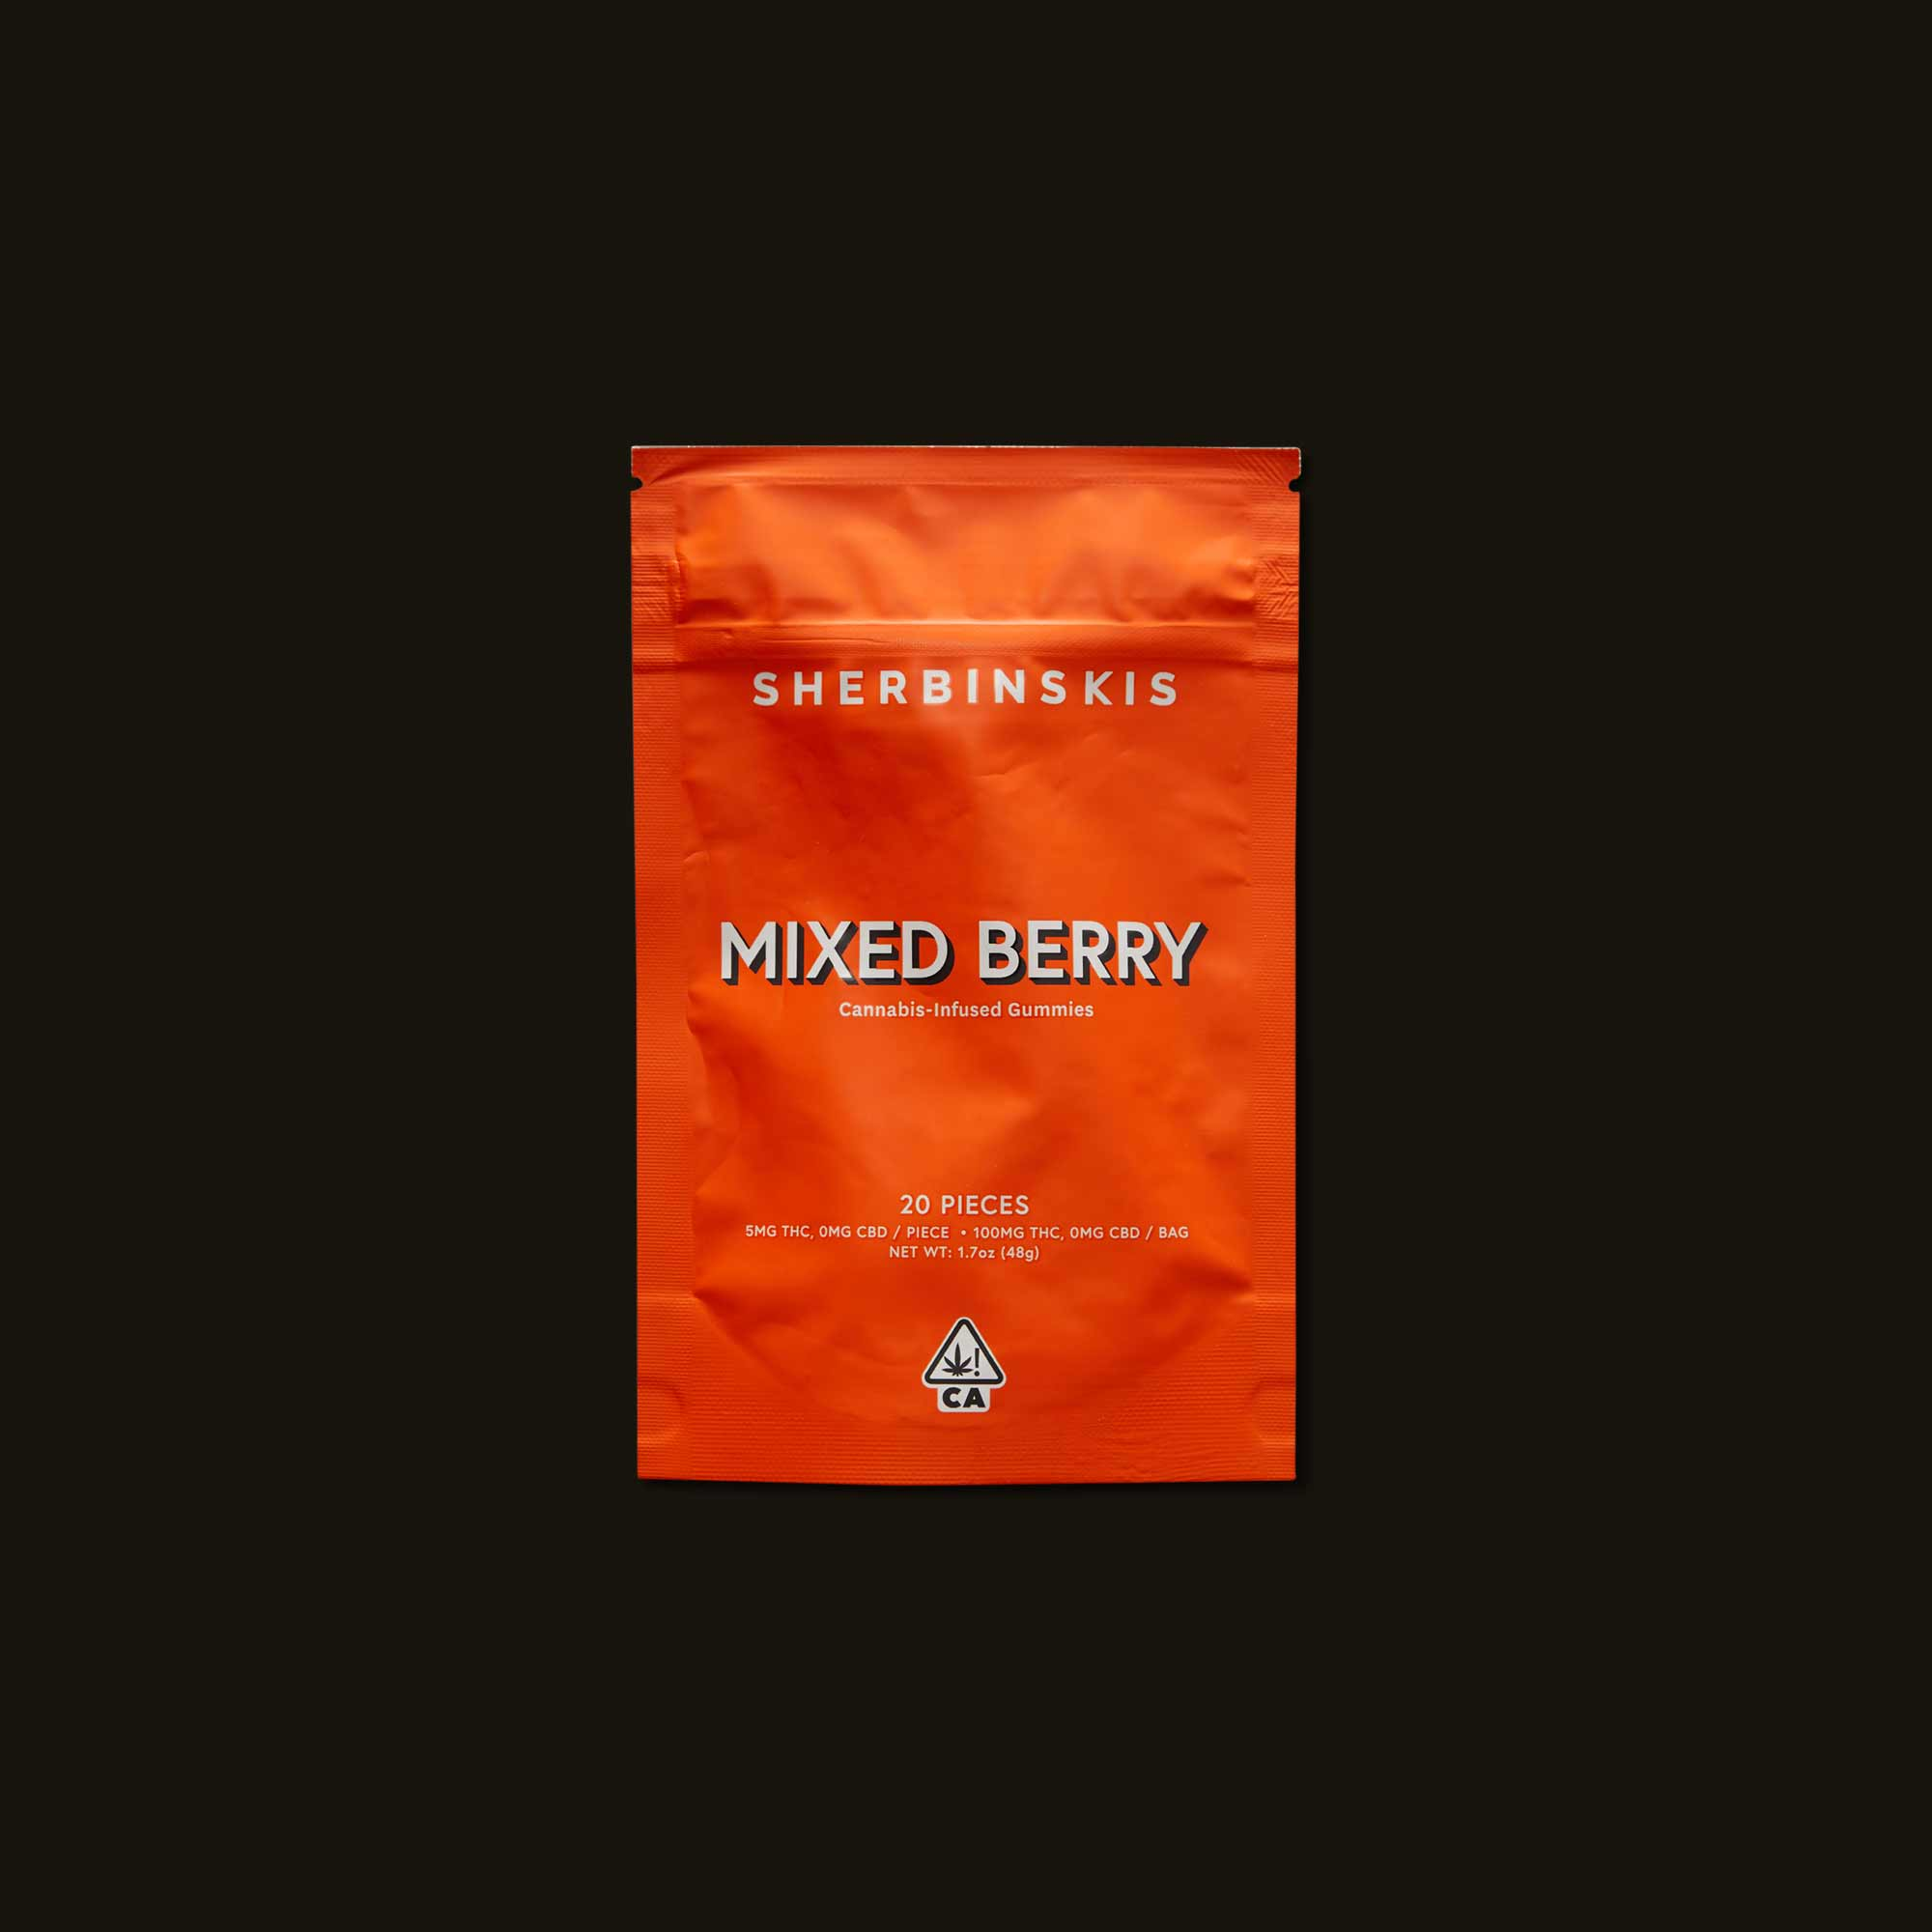 Sherbinskis Mixed Berry Gummies